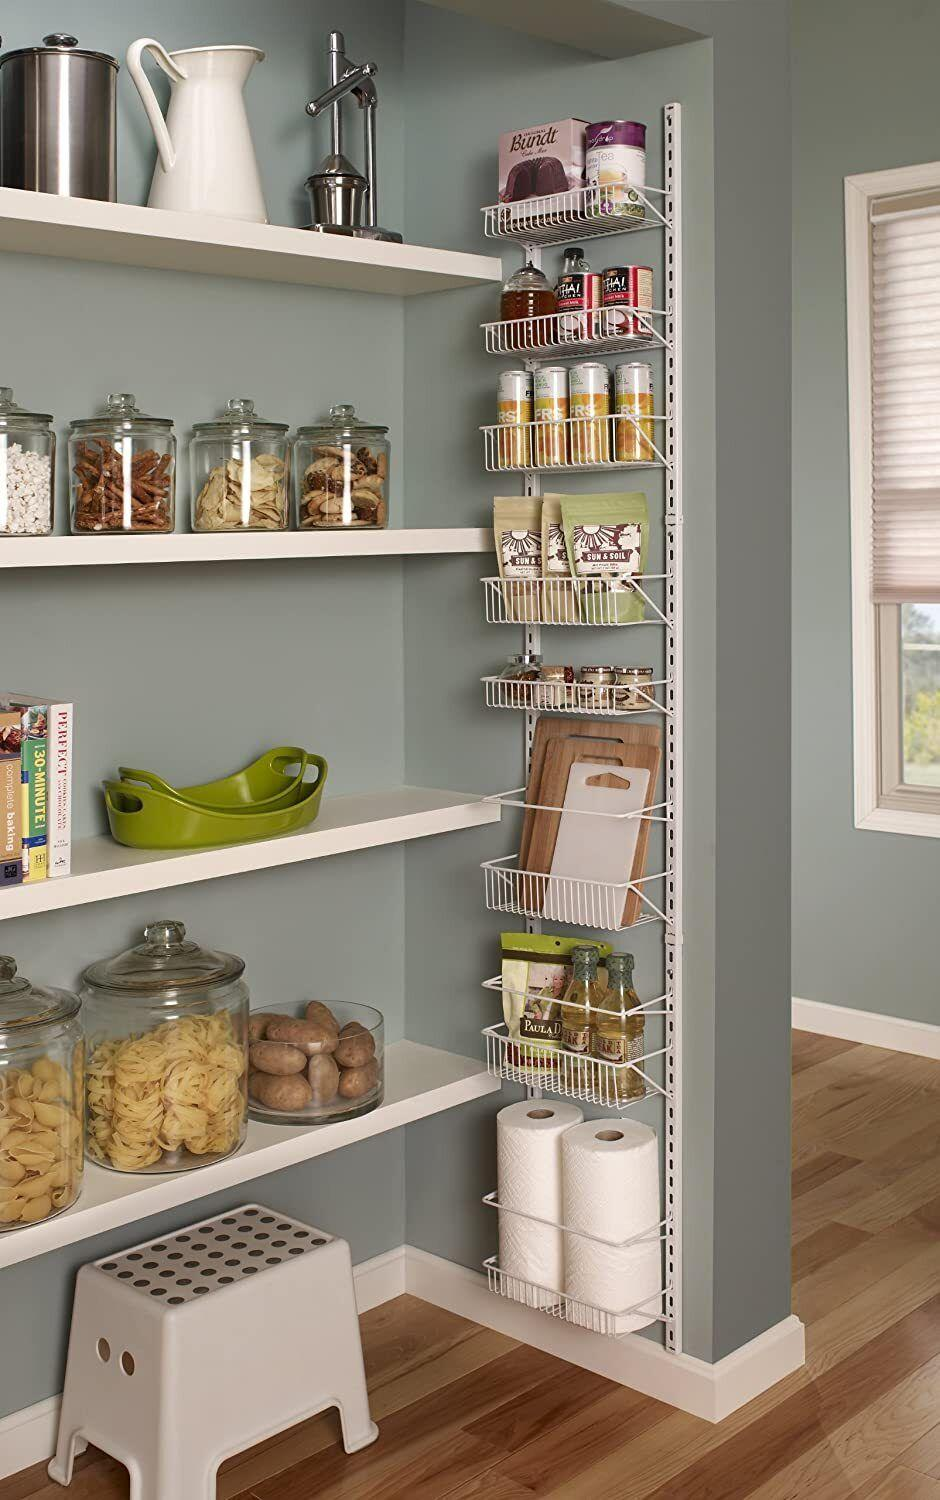 """Perfect for anyone who's lacking in shelf space. This'll add some much-needed storage in your pantry, kitchen, bathroom, garage -- you name it!<br /><br /><strong>Promising review:</strong>""""I love this door organizer!!! I used Command strip hooks(the ones with the metal hook but plastic back) to keep the organizer extra stable. I used the bottom shelf to store my plastic wrap, foil, wax paper, and more, so if you're not needing storage for these, you should be able to use all the shelves.<strong>This organizer has really helped alleviate my pantry clutter!</strong>I highly recommend this item!!!"""" --<a href=""""https://amzn.to/3xUgRcT"""" target=""""_blank"""" rel=""""noopener noreferrer"""">Super Momx2</a><br /><br /><strong>Get it from Amazon for <a href=""""https://amzn.to/3o0WeXN"""" target=""""_blank"""" rel=""""noopener noreferrer"""">$33.99+</a> (available in two sizes).</strong>"""